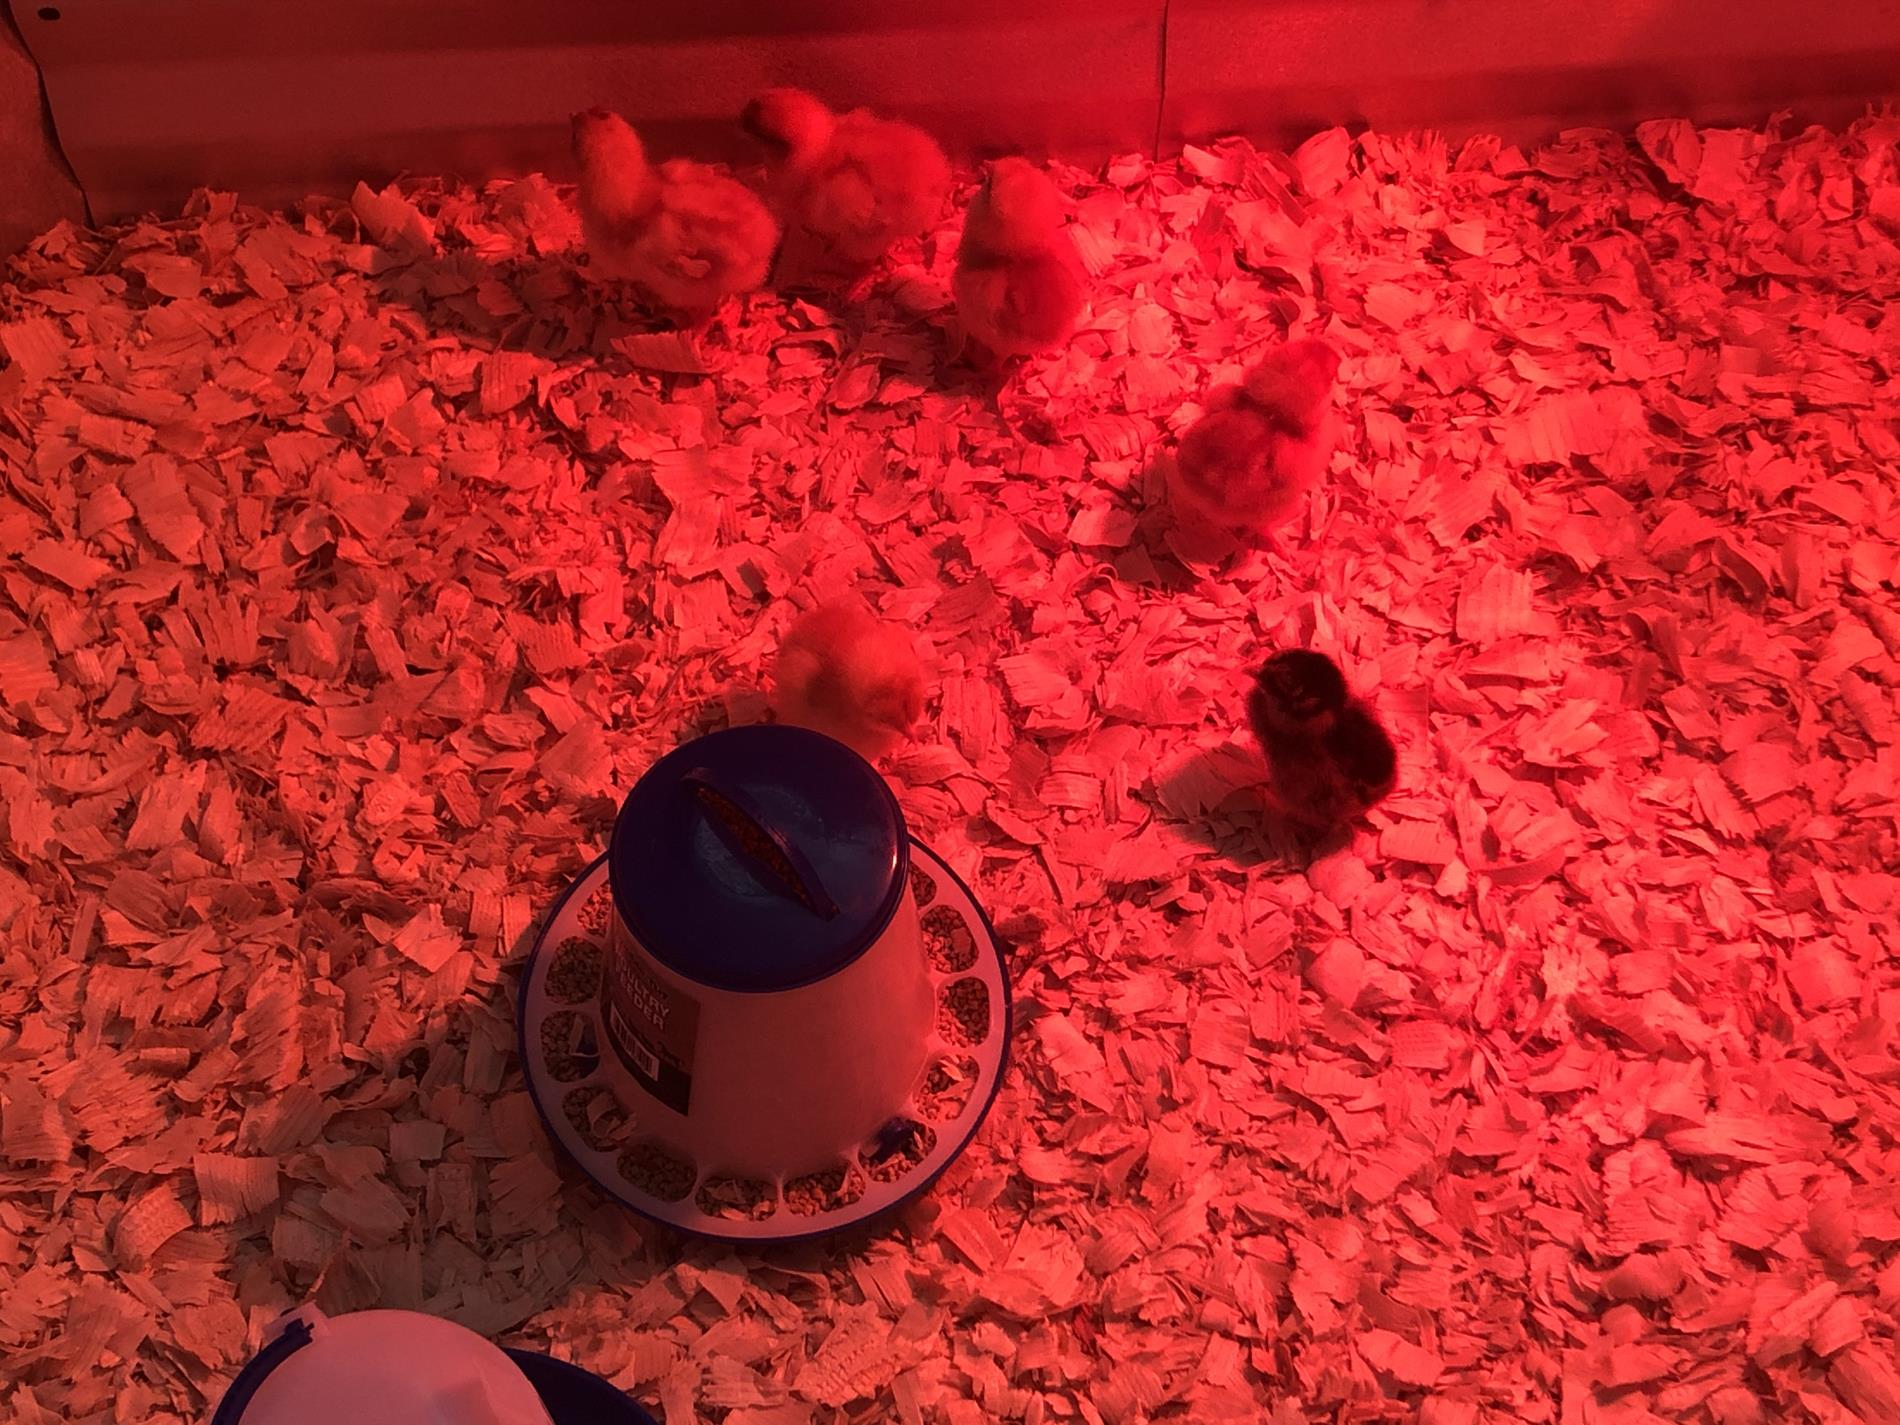 Taking Care of Baby Chicks In a Red Lit Up Area